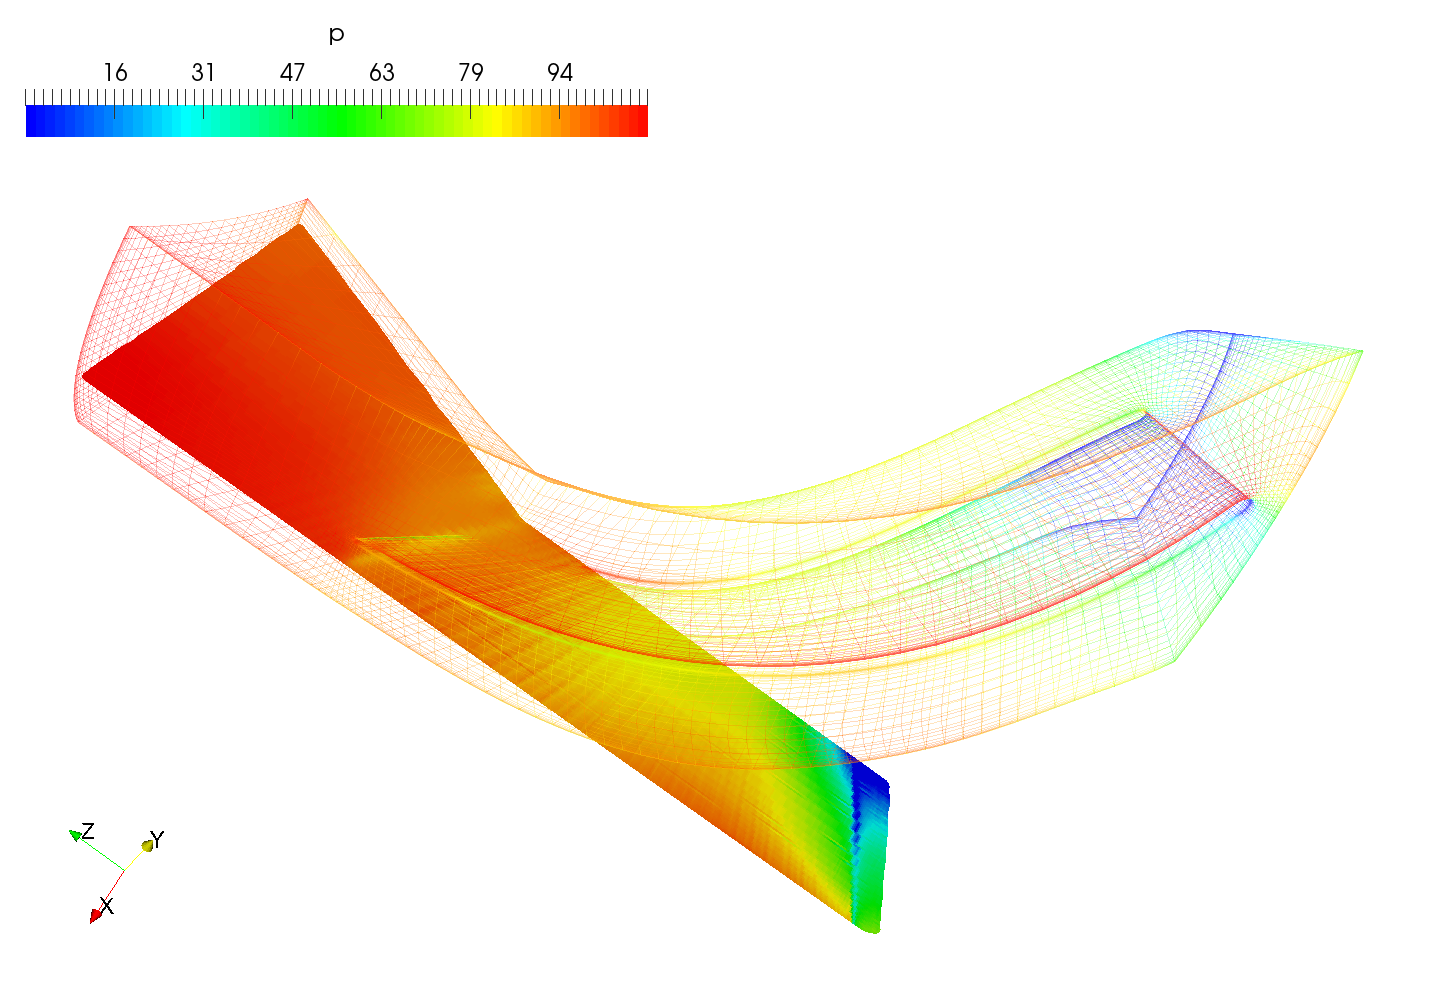 Axial-Pump-Turbomachinery-CFD-Stator-Meridional-Average